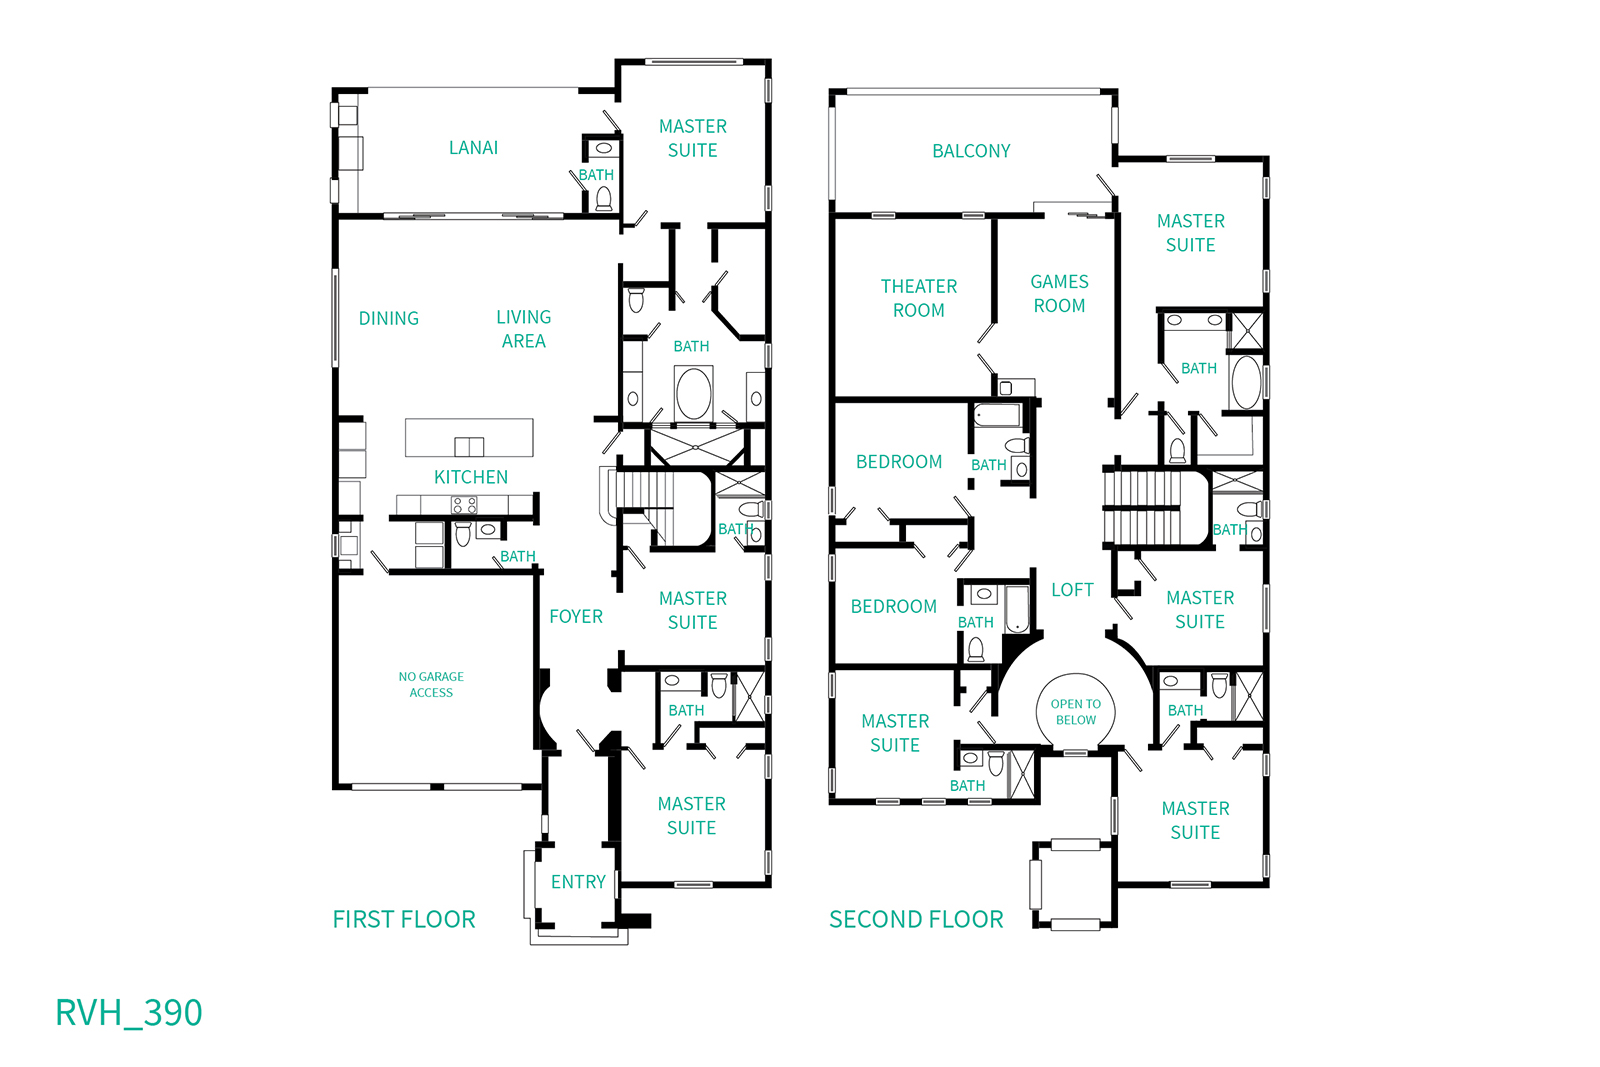 Floor Plan for Ultimate Vacation Home Winner | 9 Bed Home Featured In HGTV's House Hunters with Theater Room, Custom Kids' Bedroom, Games Room, Private Pool and Spillover Spa